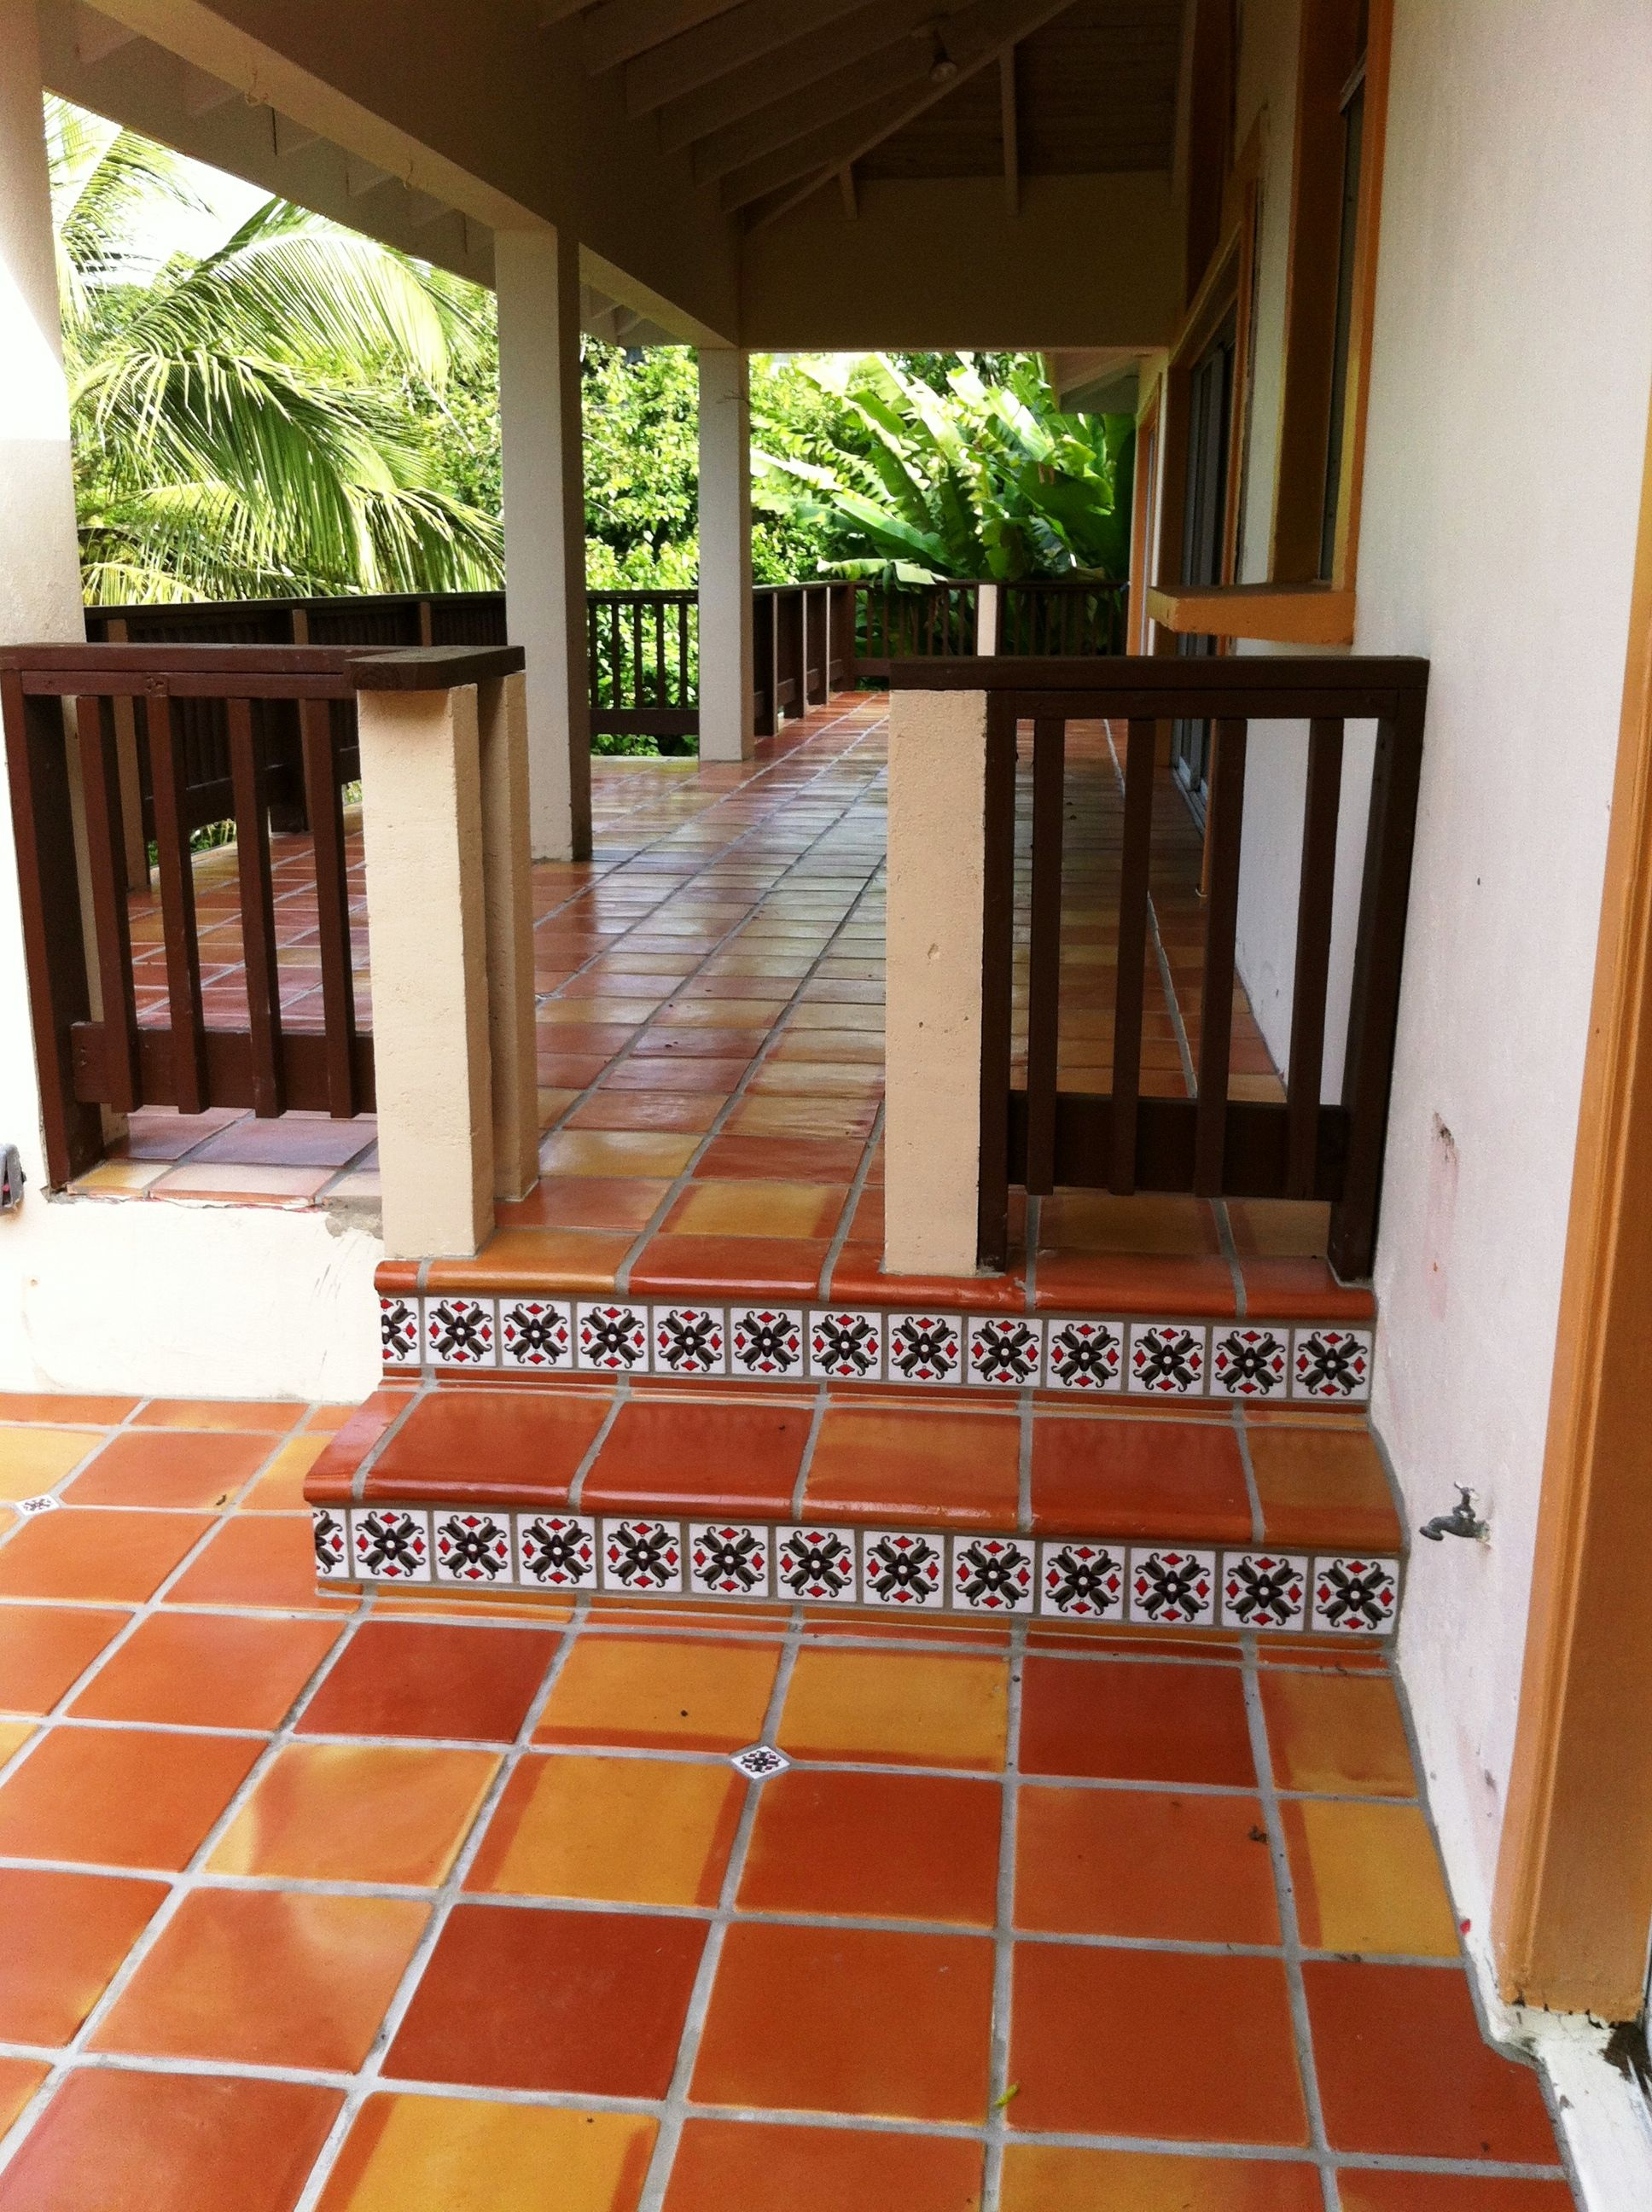 terracotta outdoor patio - love terracotta tile. looking for ideas